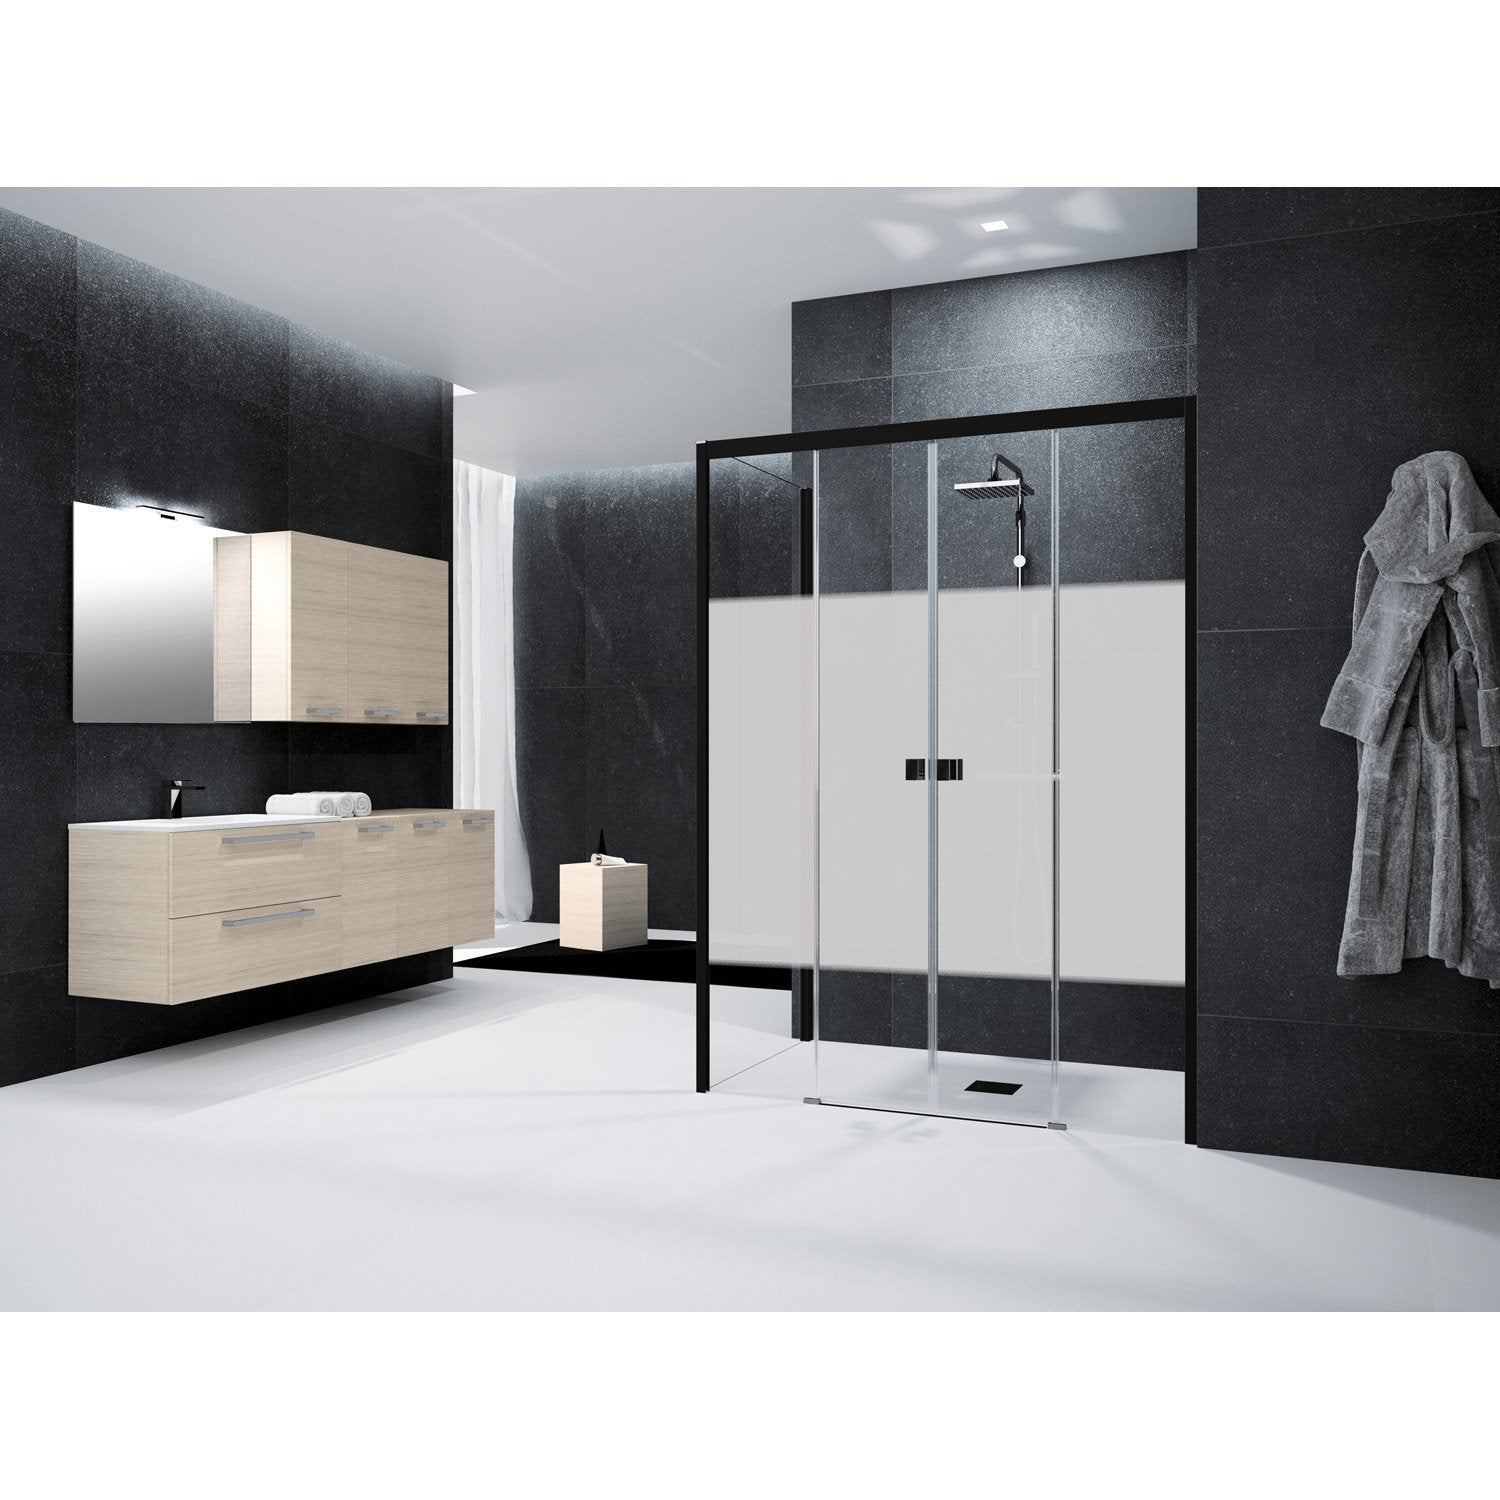 porte de douche coulissante 150 cm s rigraphi neo leroy merlin. Black Bedroom Furniture Sets. Home Design Ideas